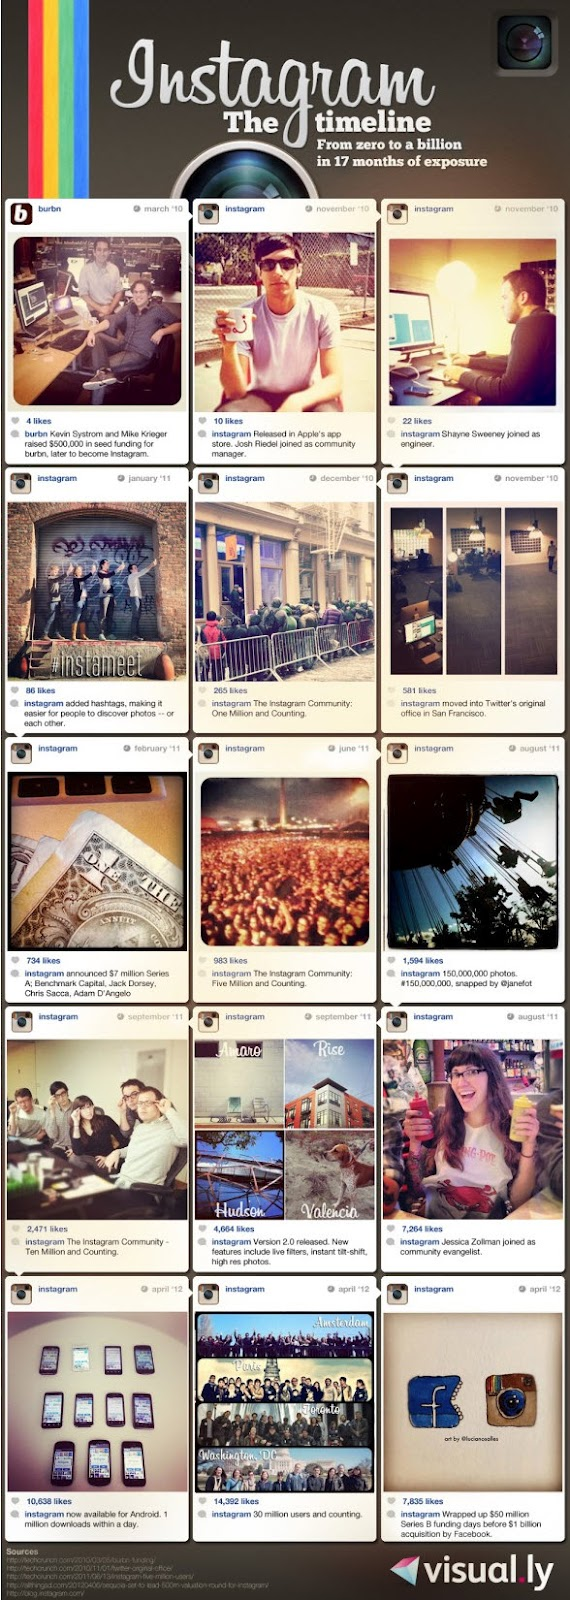 Instagram 2012 - http://visual.ly/history-instagram-infographic